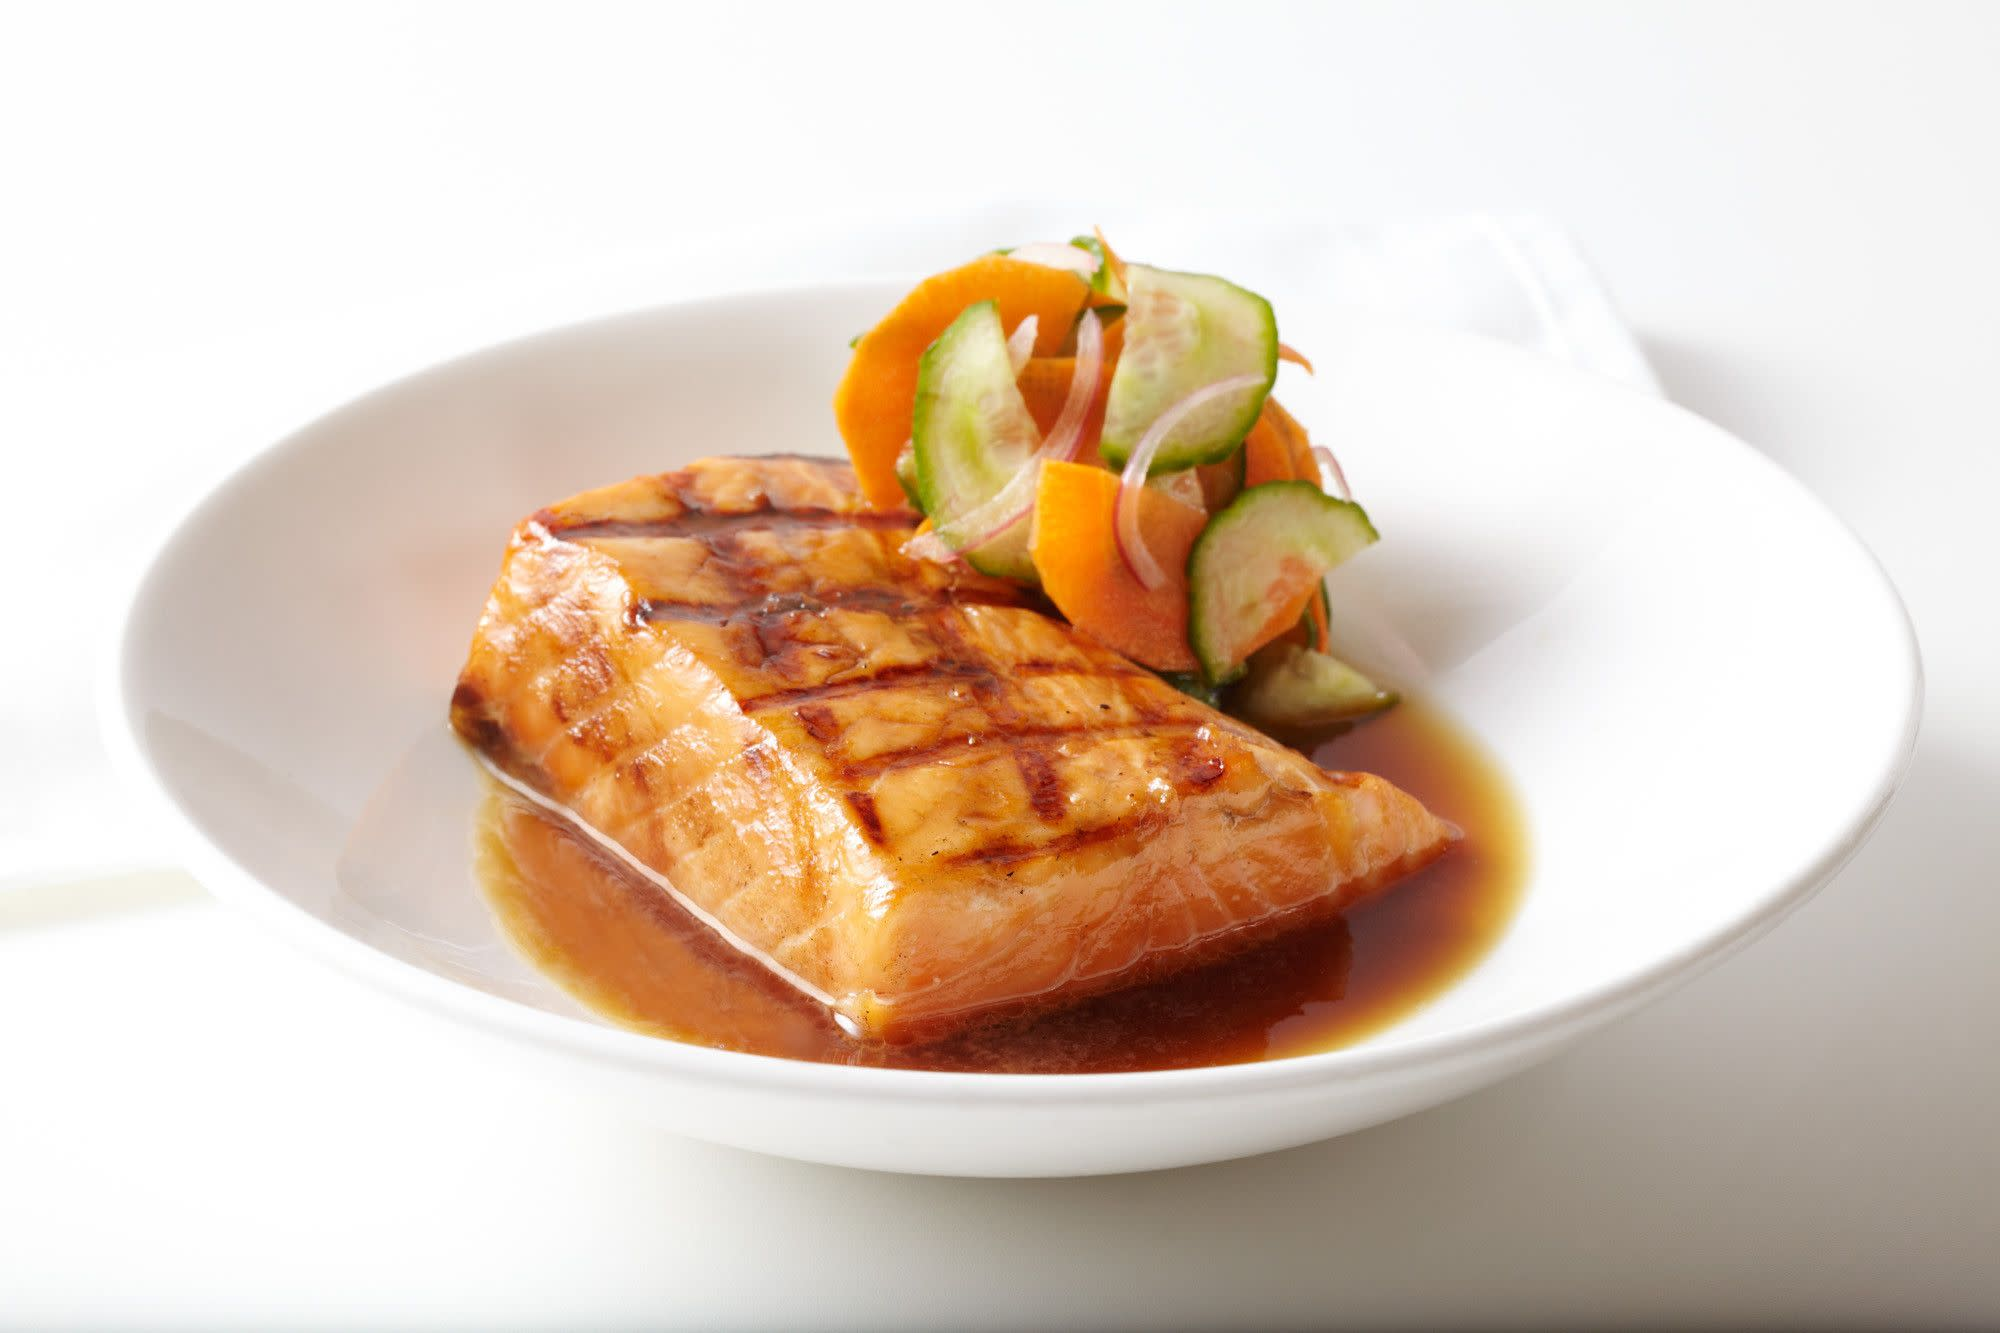 Hibachi-Grilled Atlantic Salmon at Roy's Restaurant in Orlando